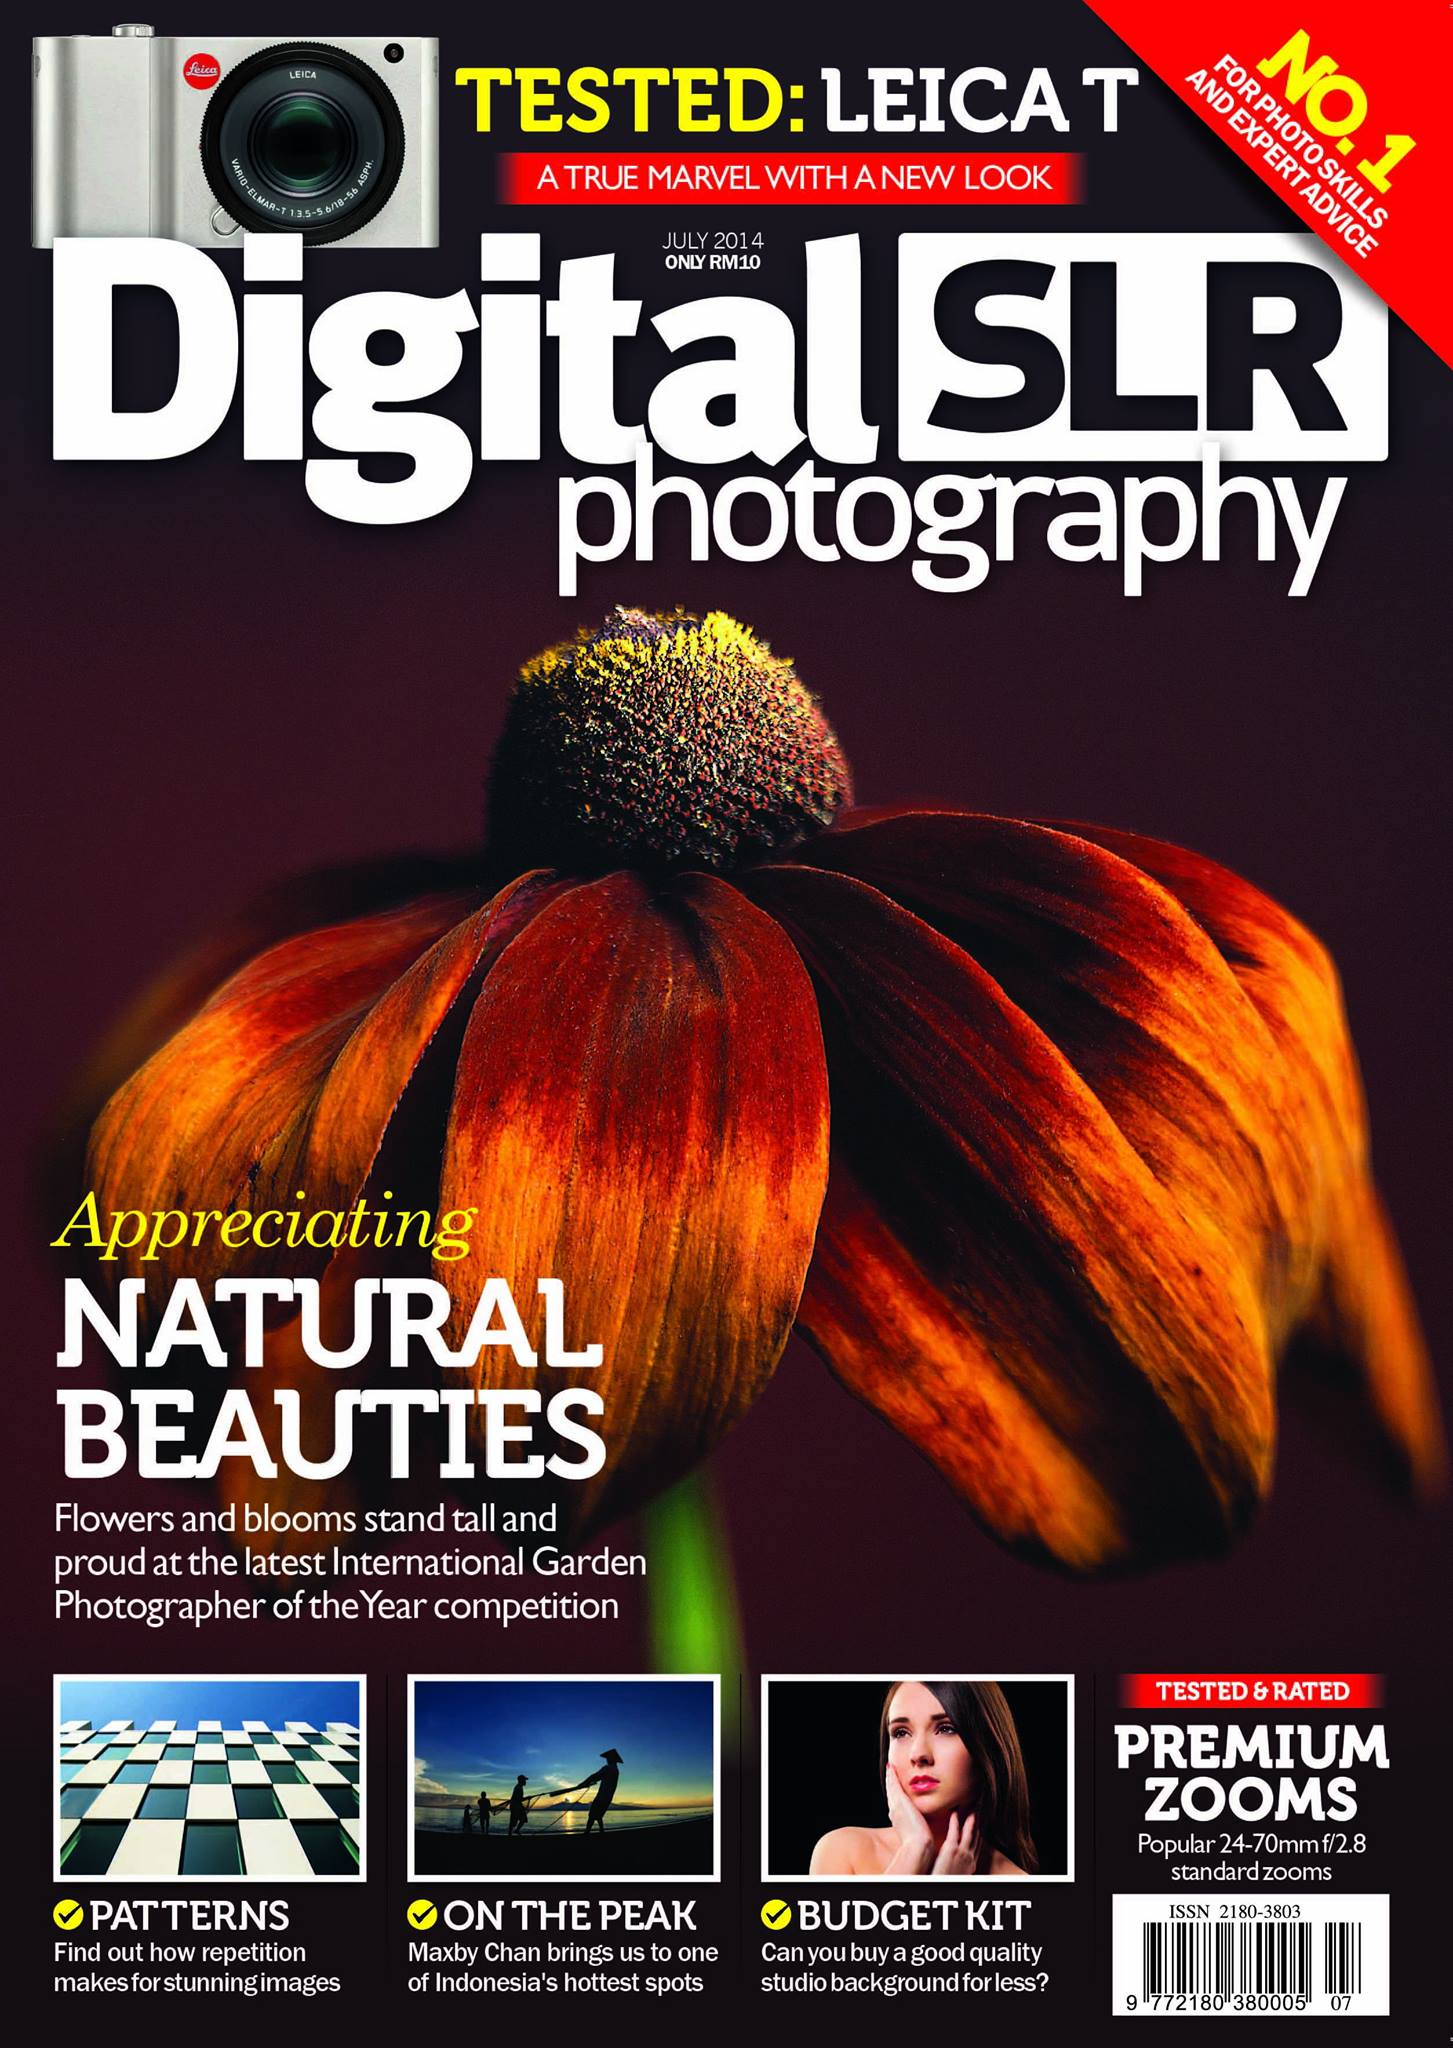 DigitalSLR magazine is the largest monthly photography magazine published in Malaysia. They have a Bahasa Malaysia version published under Aperture magazine.